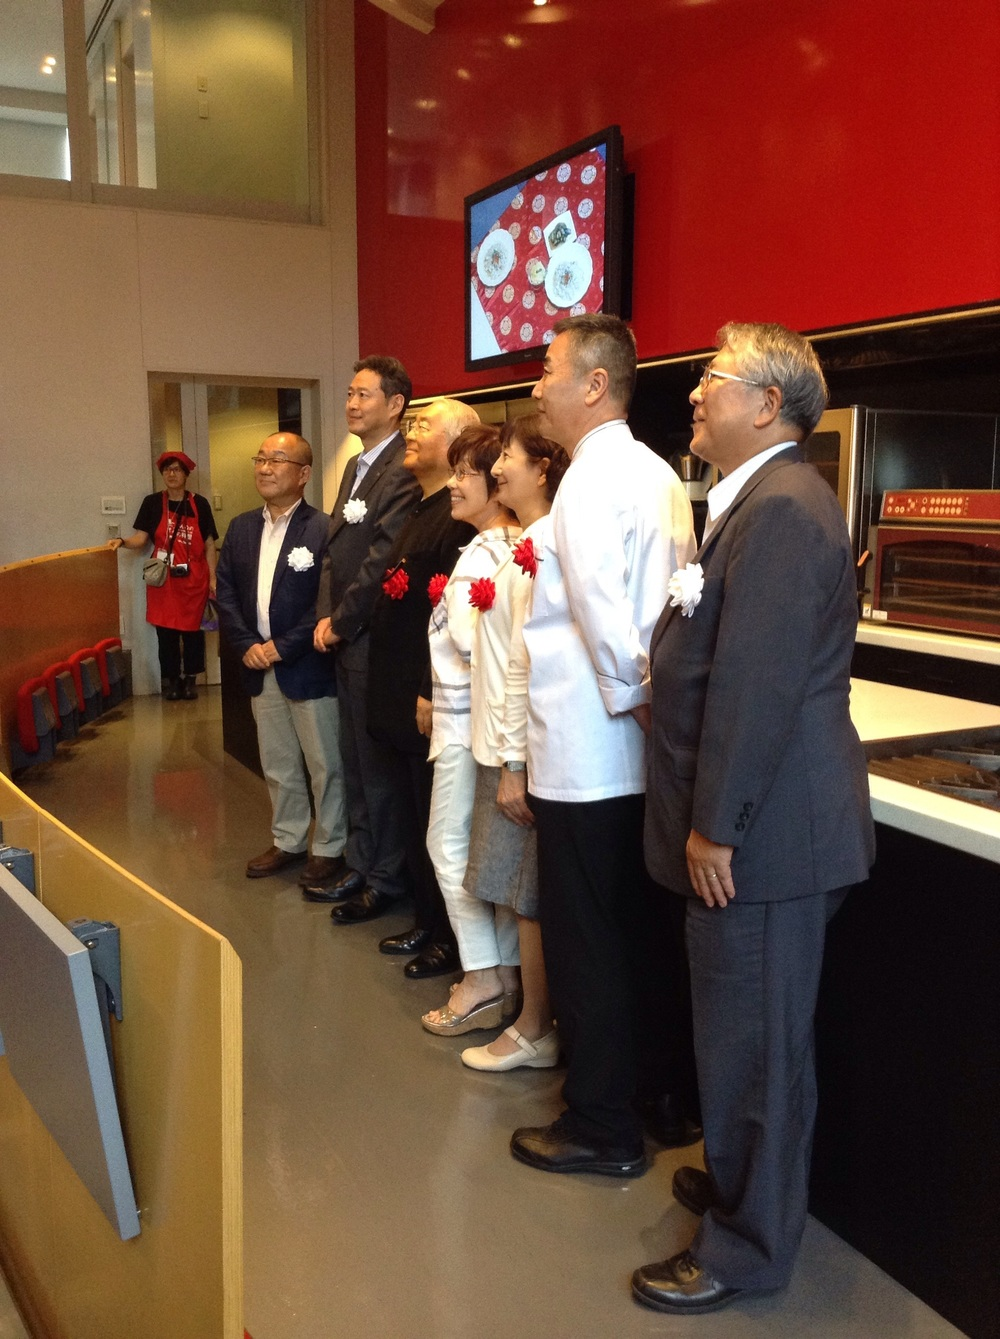 And the jury + α: soya sauce association top members, Dr. Hattori, cooking specialists and chef from a big hotel restaurant, itimidating